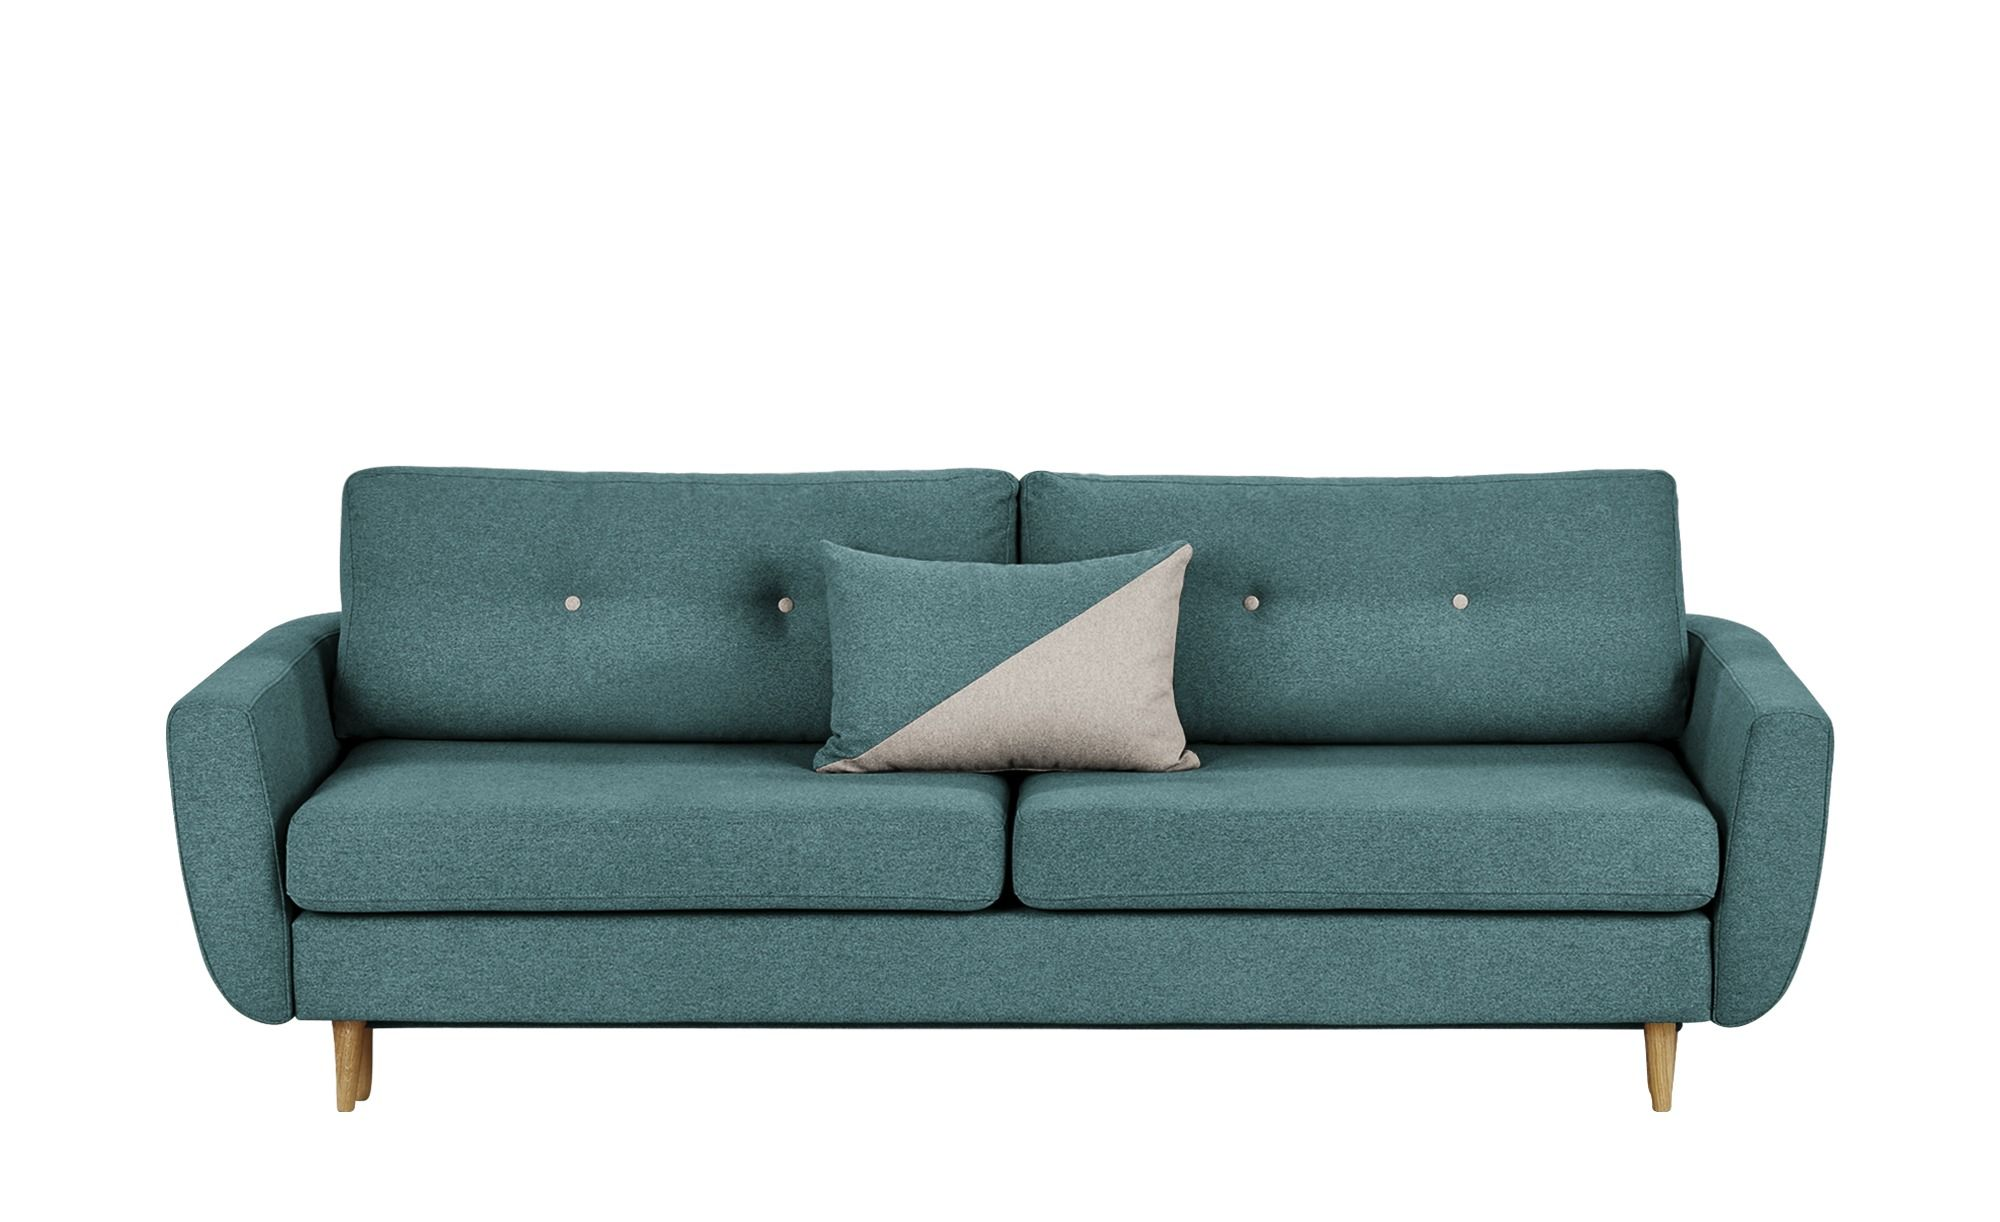 Ecksofa Grau Mömax Pin By Ladendirekt On Sofas Couches In 2018 Pinterest Sofa